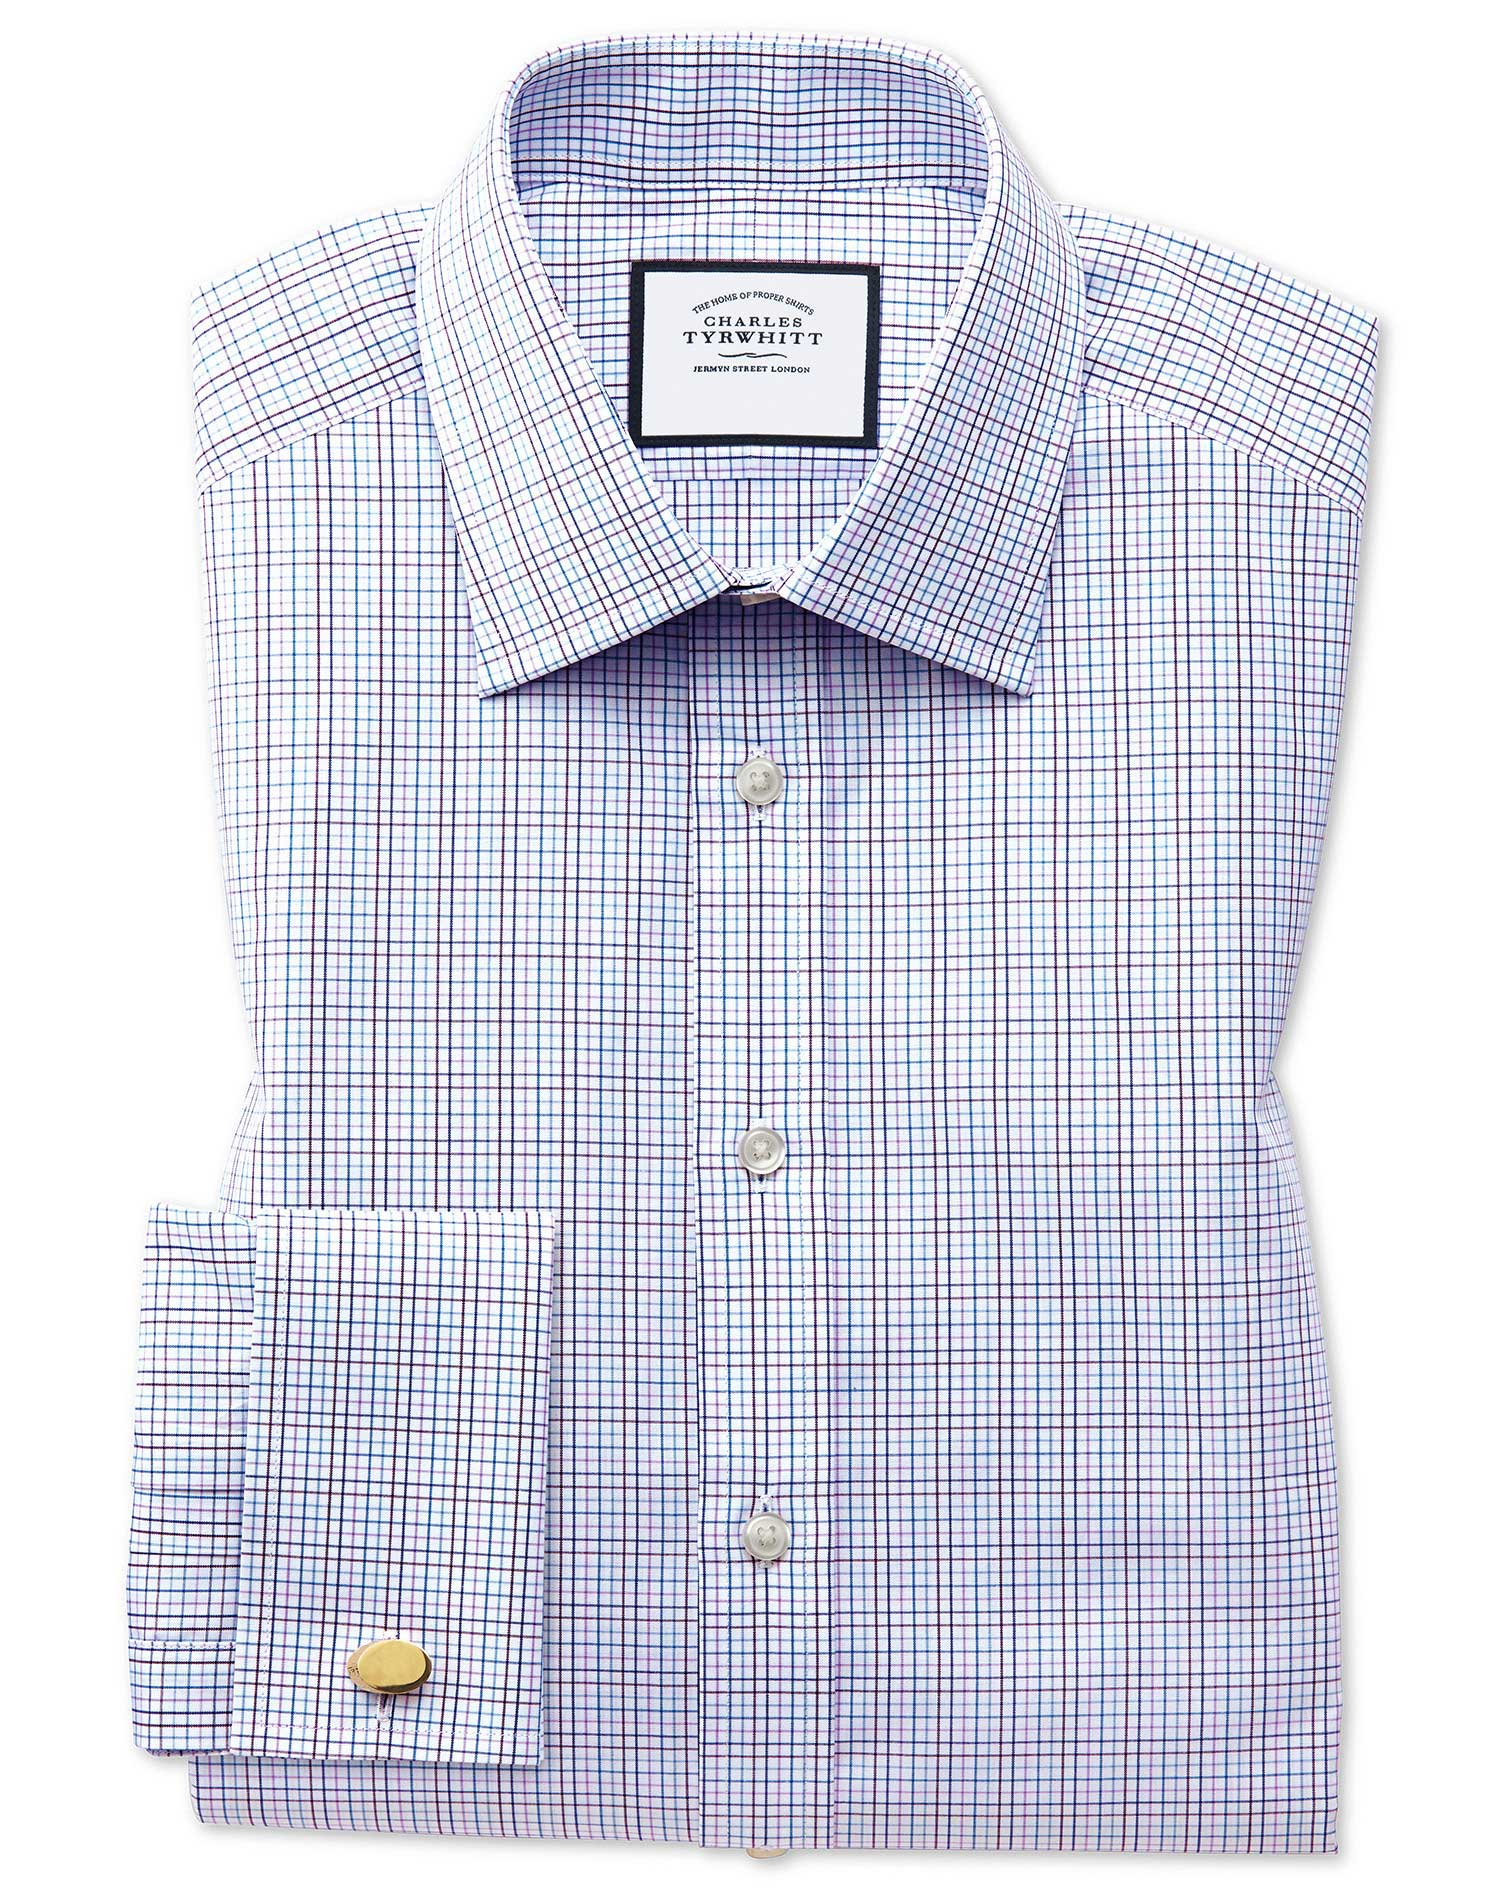 Extra Slim Fit Purple Multi Check Egyptian Cotton Formal Shirt Single Cuff Size 16/38 by Charles Tyr